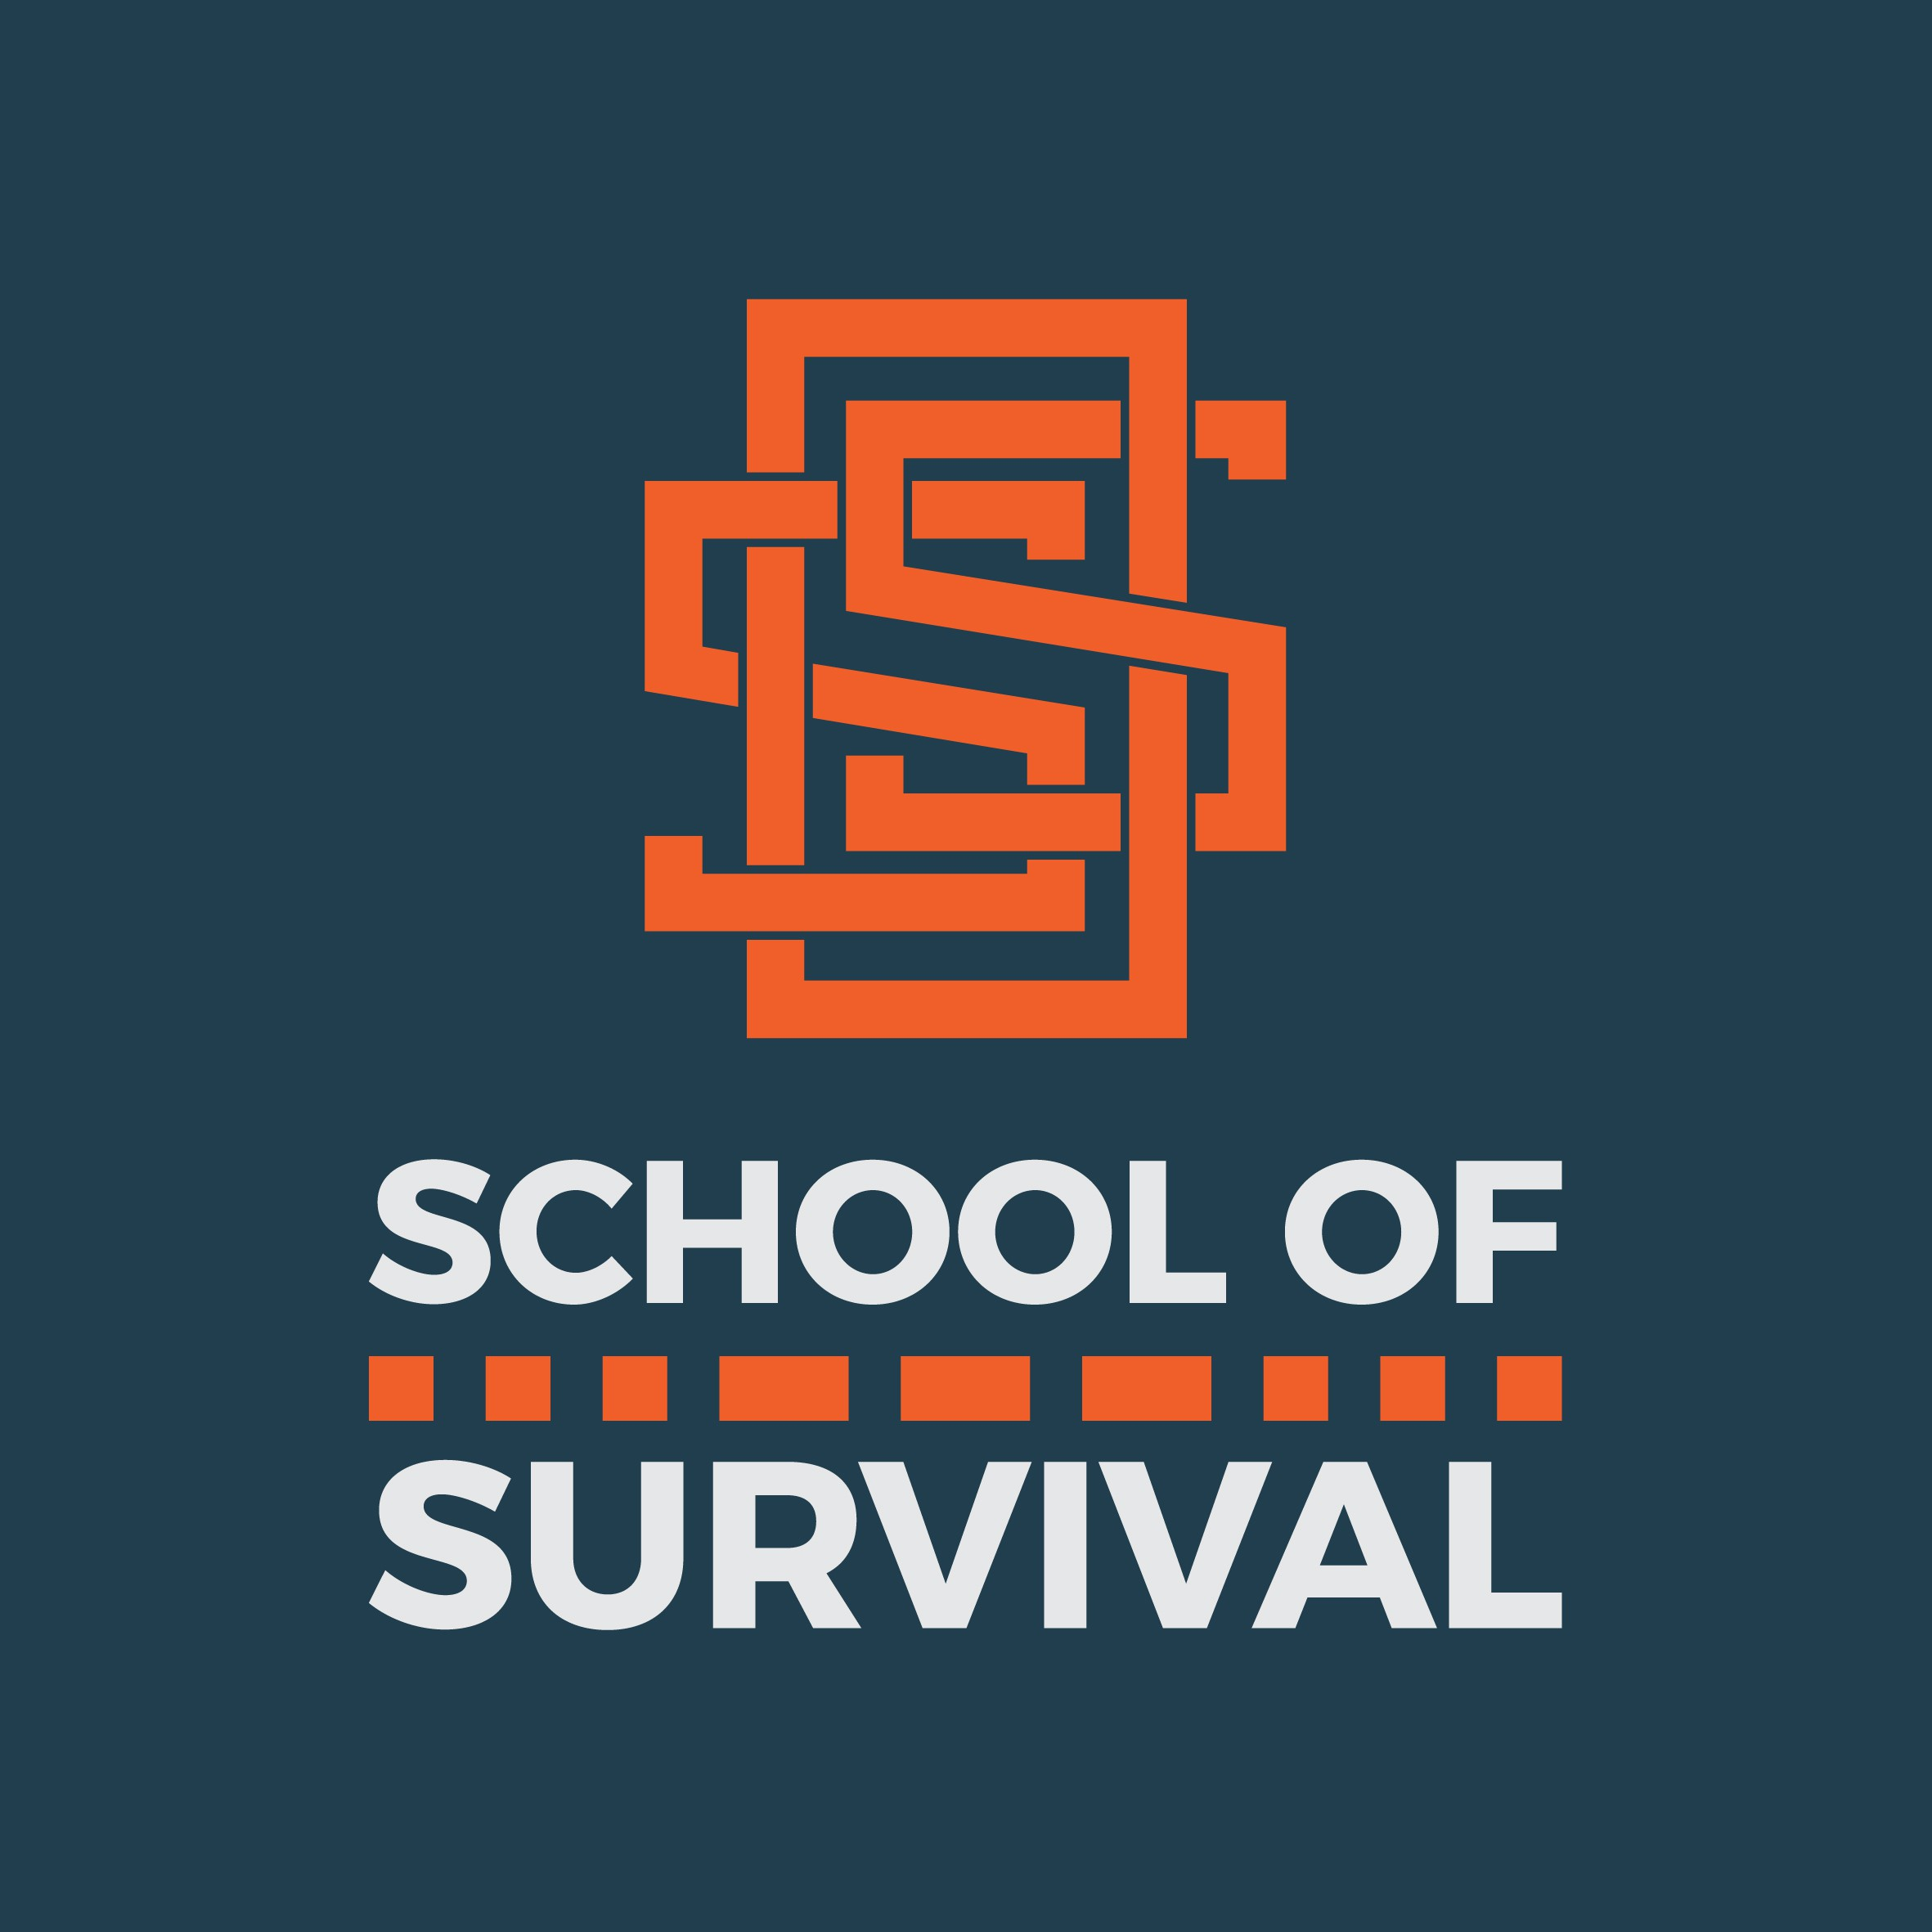 School of Survival - Retaining the Knowledge of Civilization for all Humankind